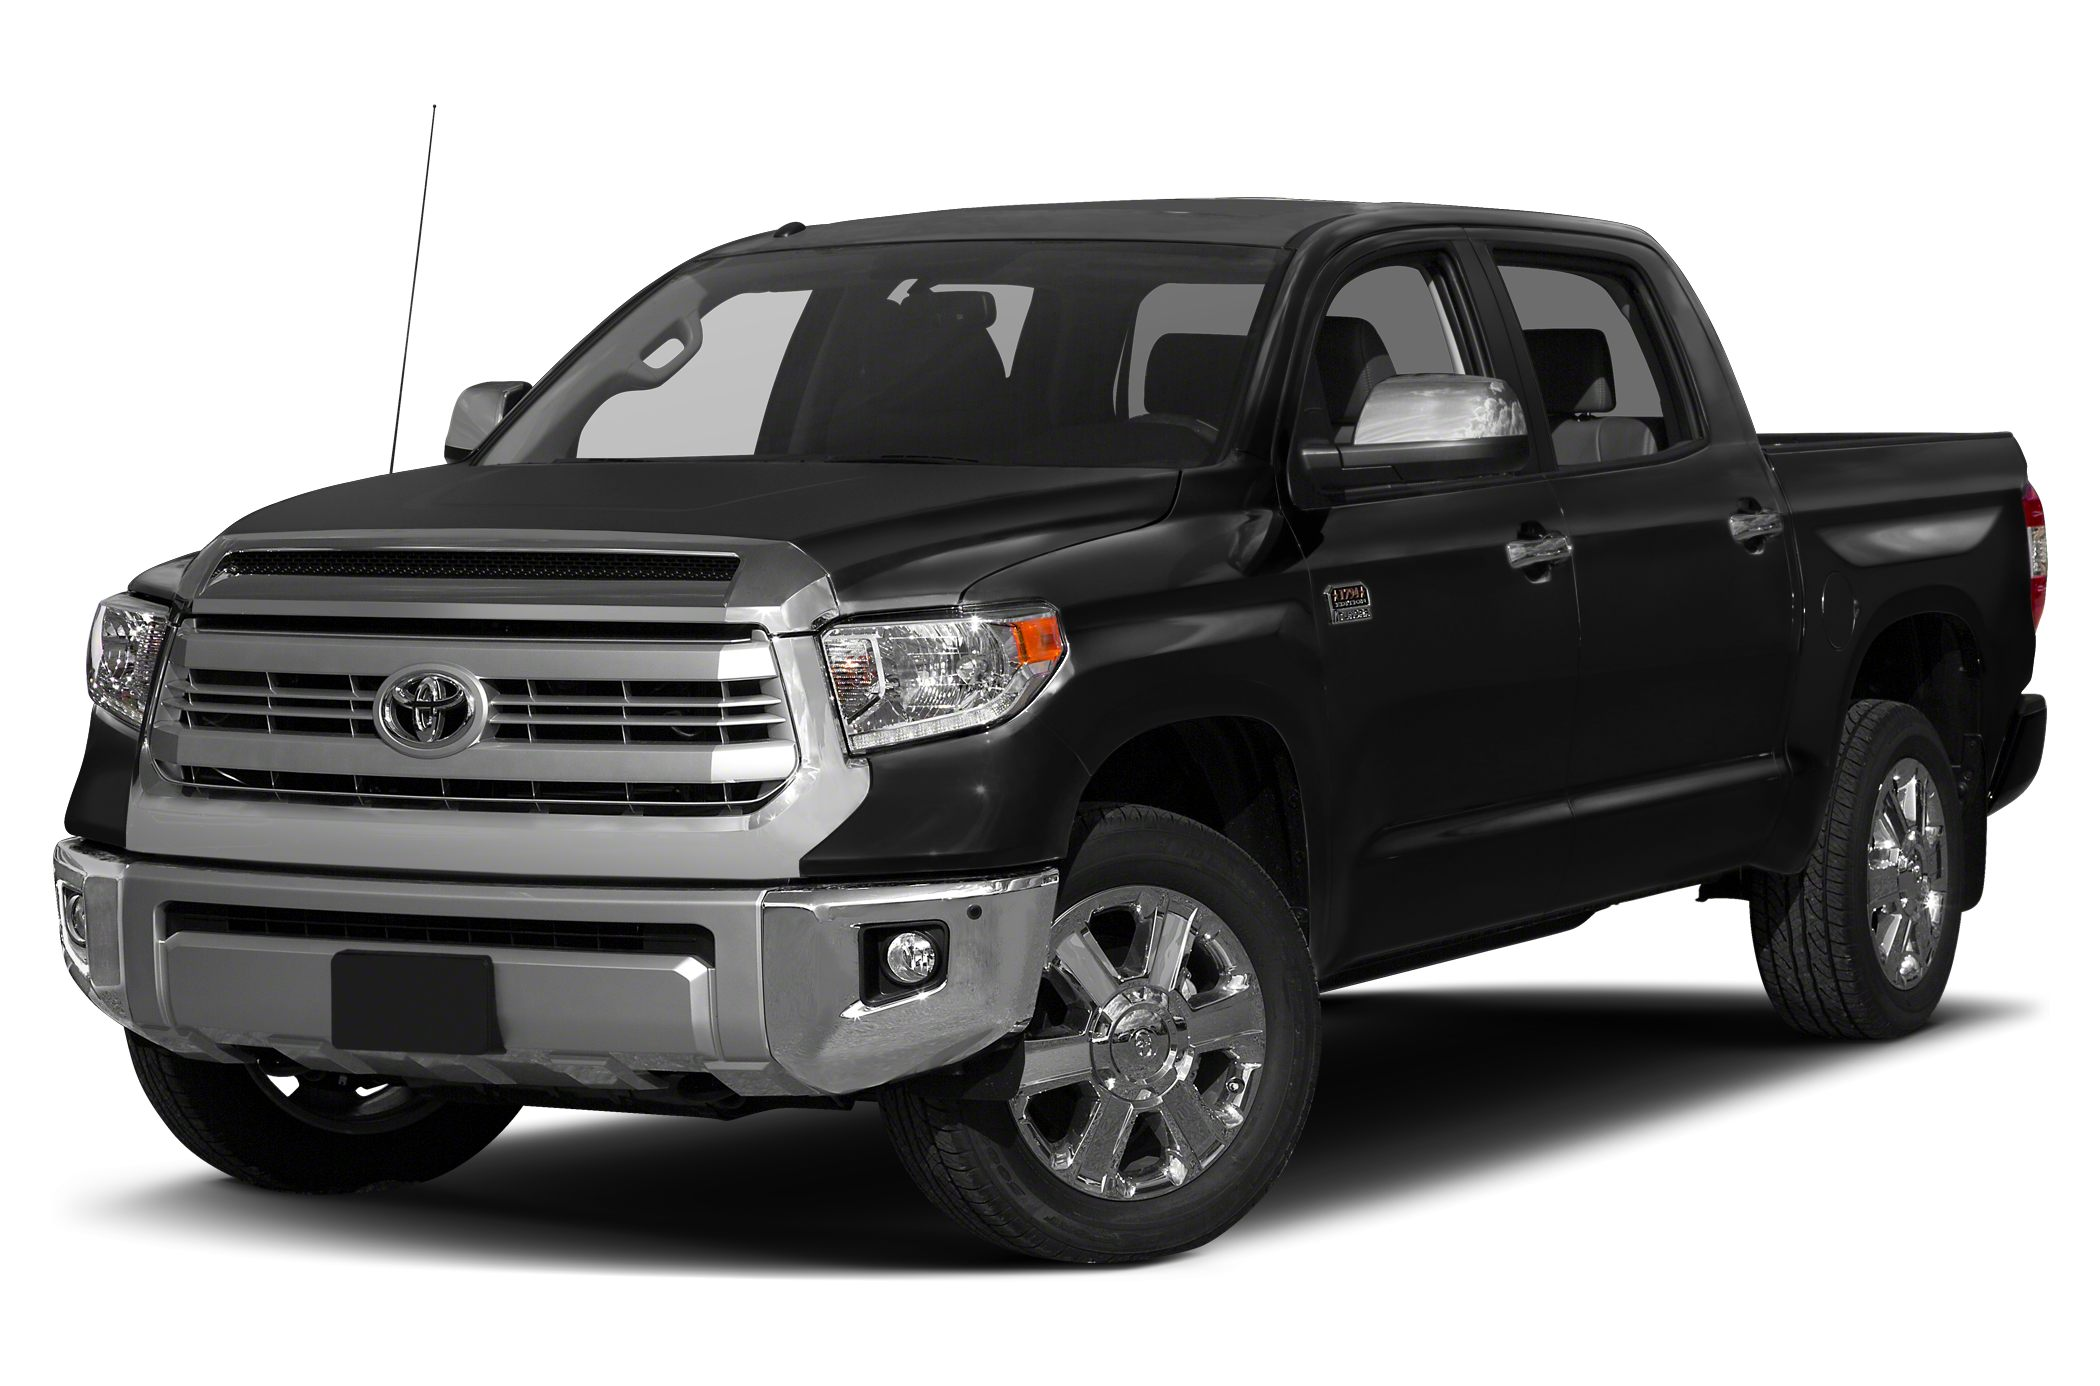 2015 Toyota Tundra 1794 Crew Cab Pickup for sale in Olathe for $52,748 with 0 miles.